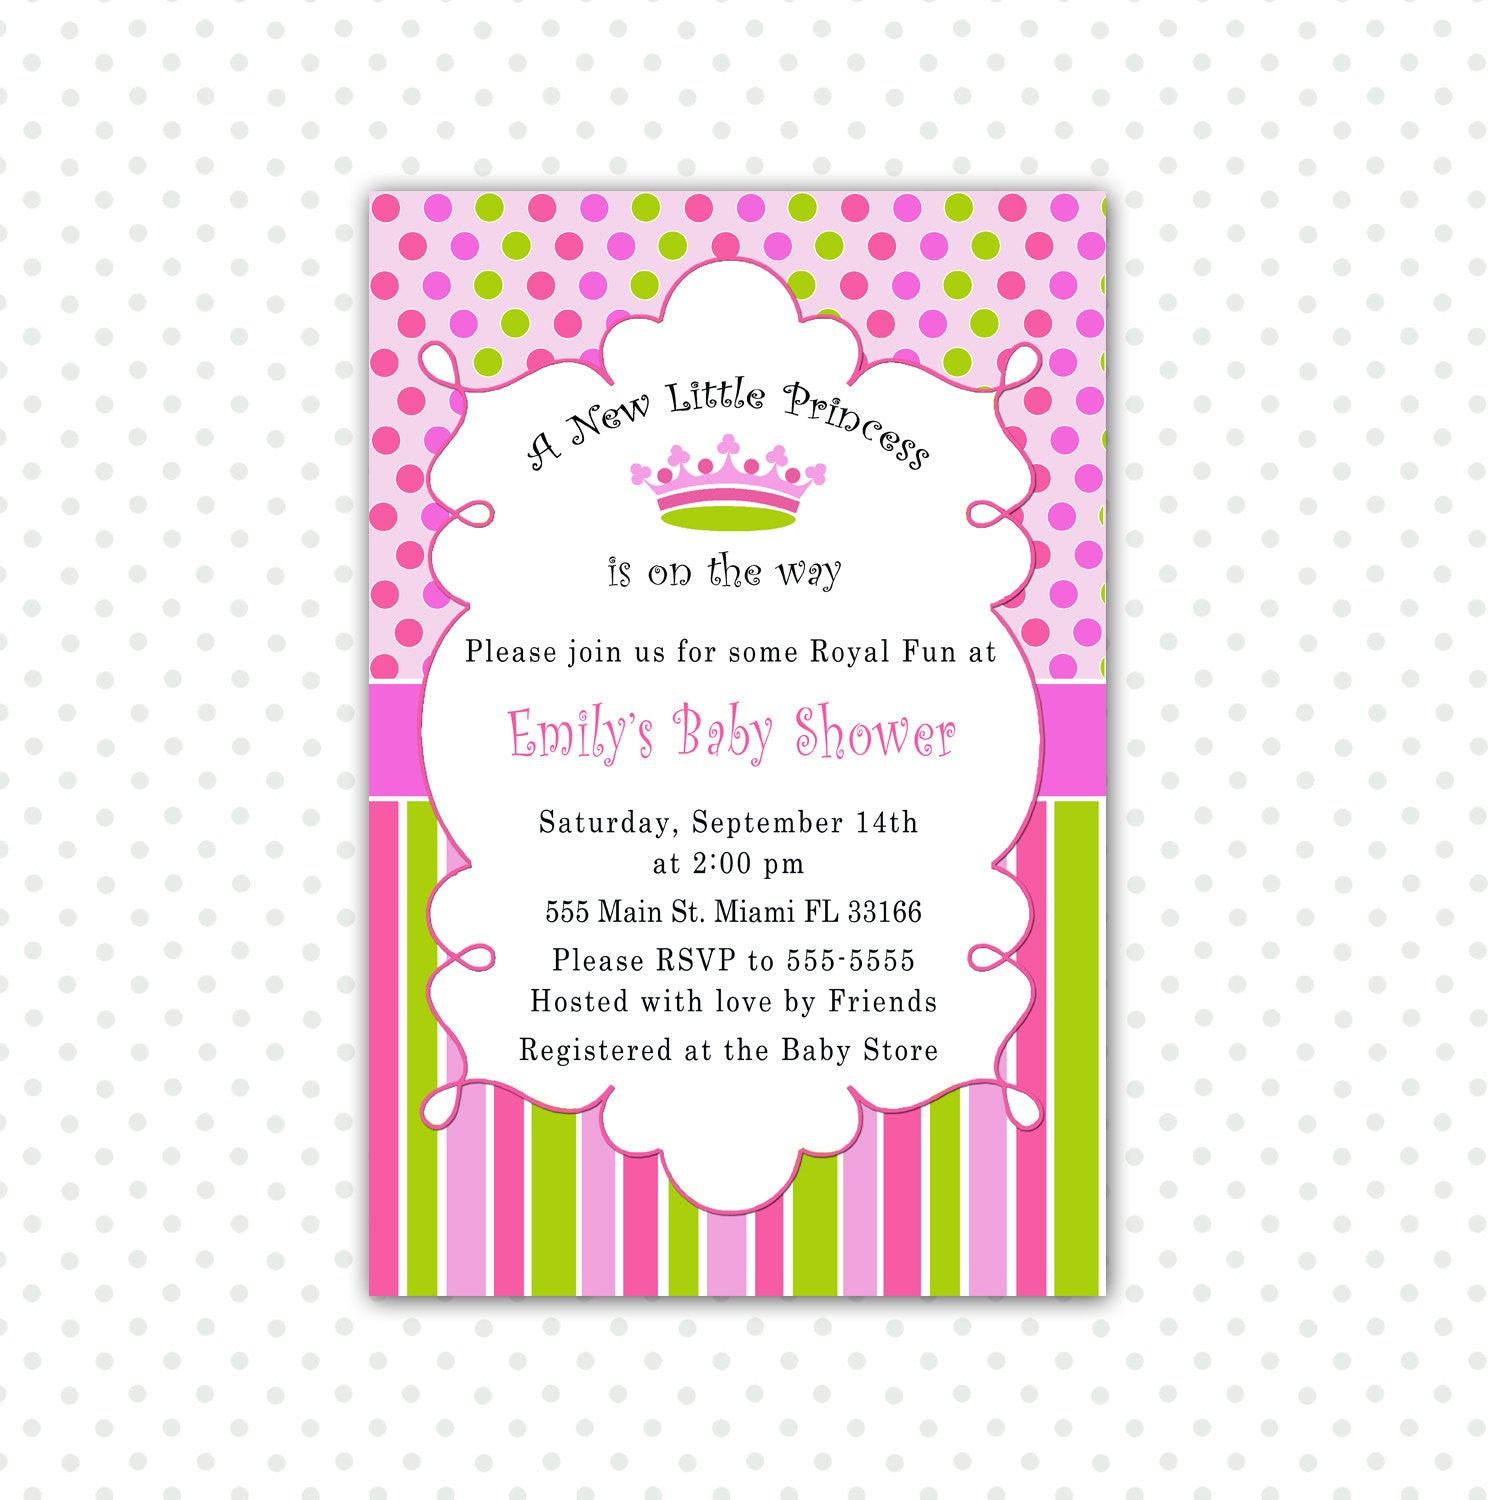 New Little Princess Baby Shower Invitation Card Pink Green – Pink ...